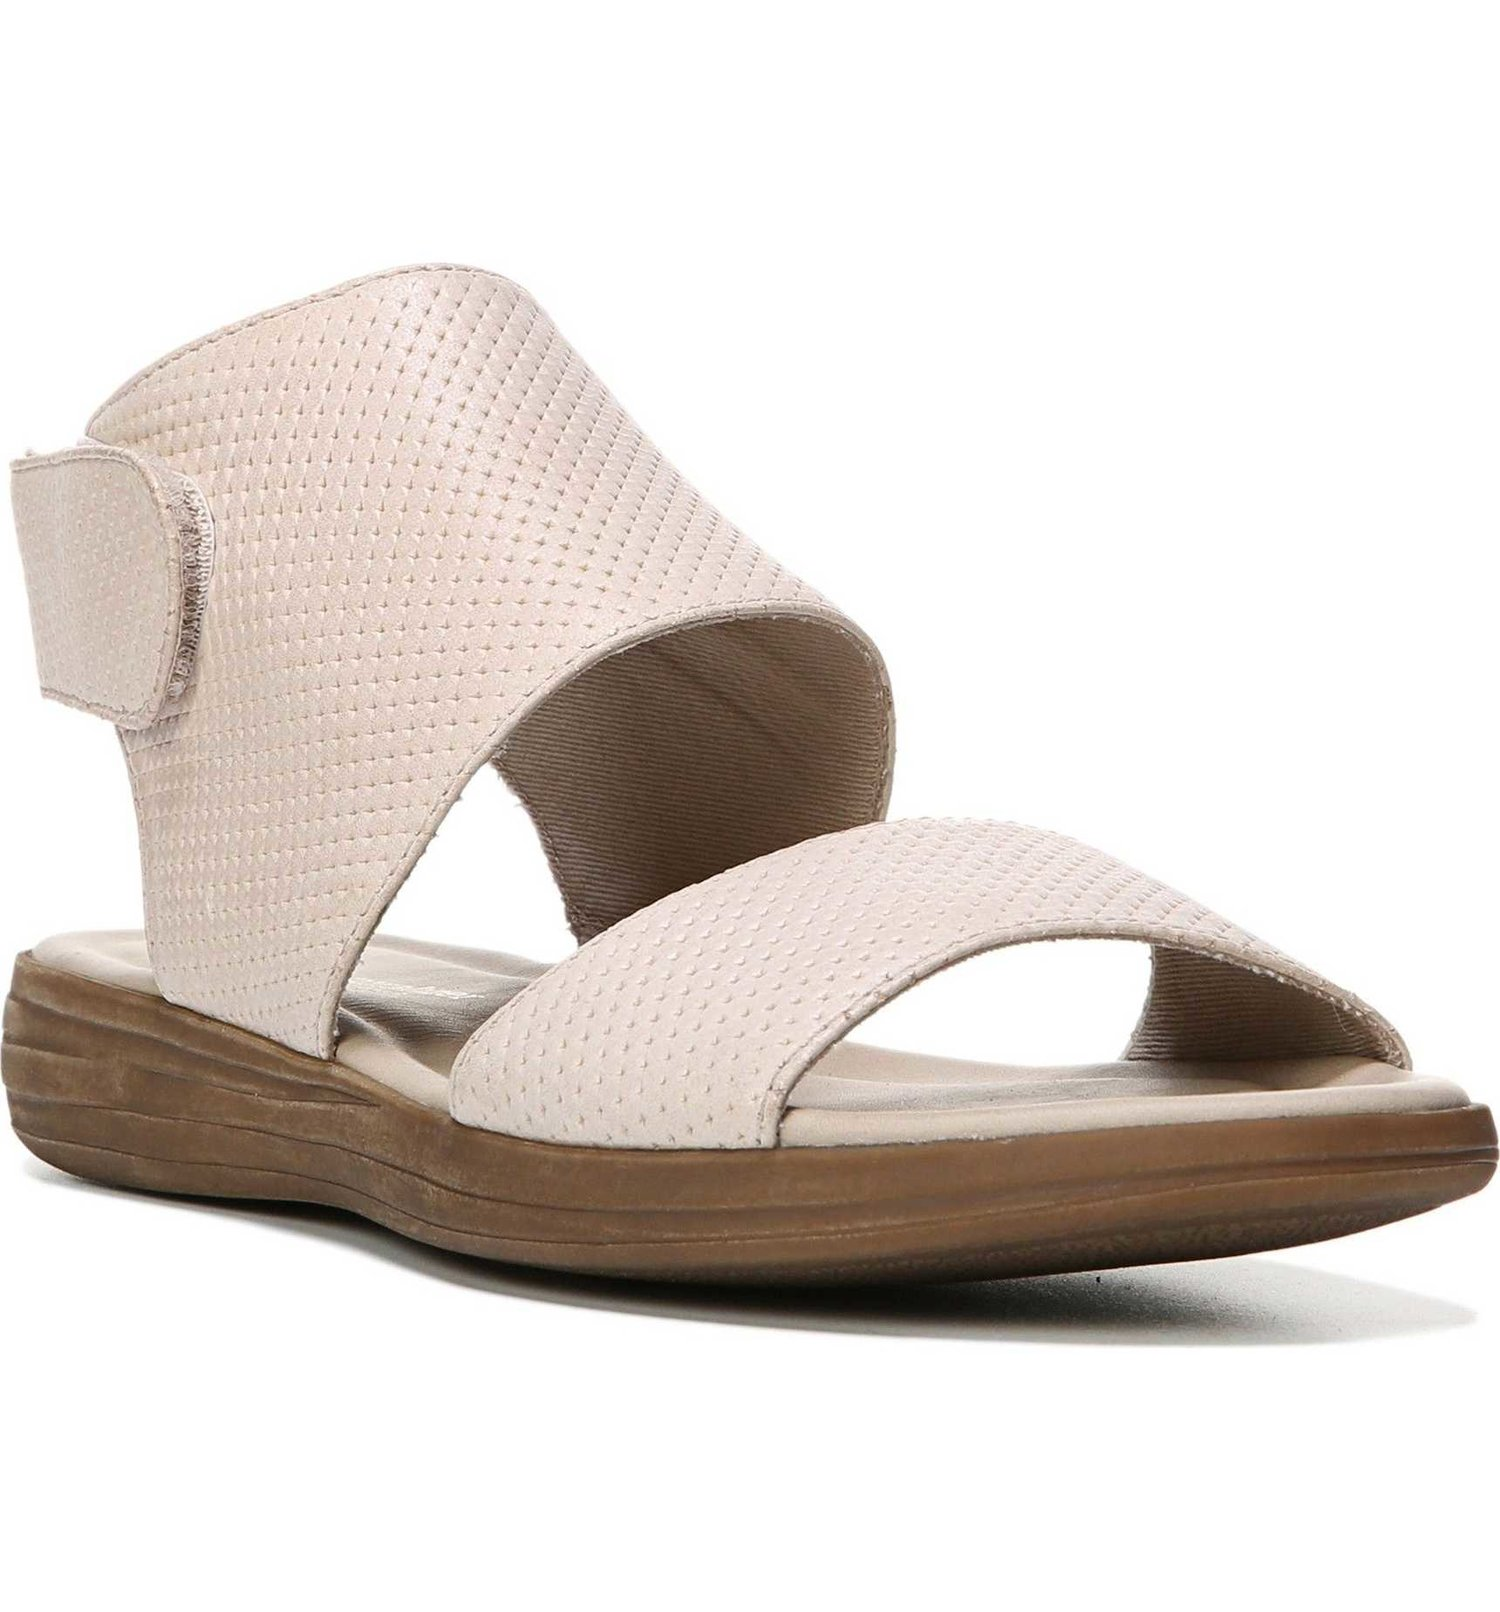 Clothing, Shoes & Accessories Purposeful Preowned Womens Naturalizer Comfort Sandals Size 10 Narrow Tan Cool In Summer And Warm In Winter